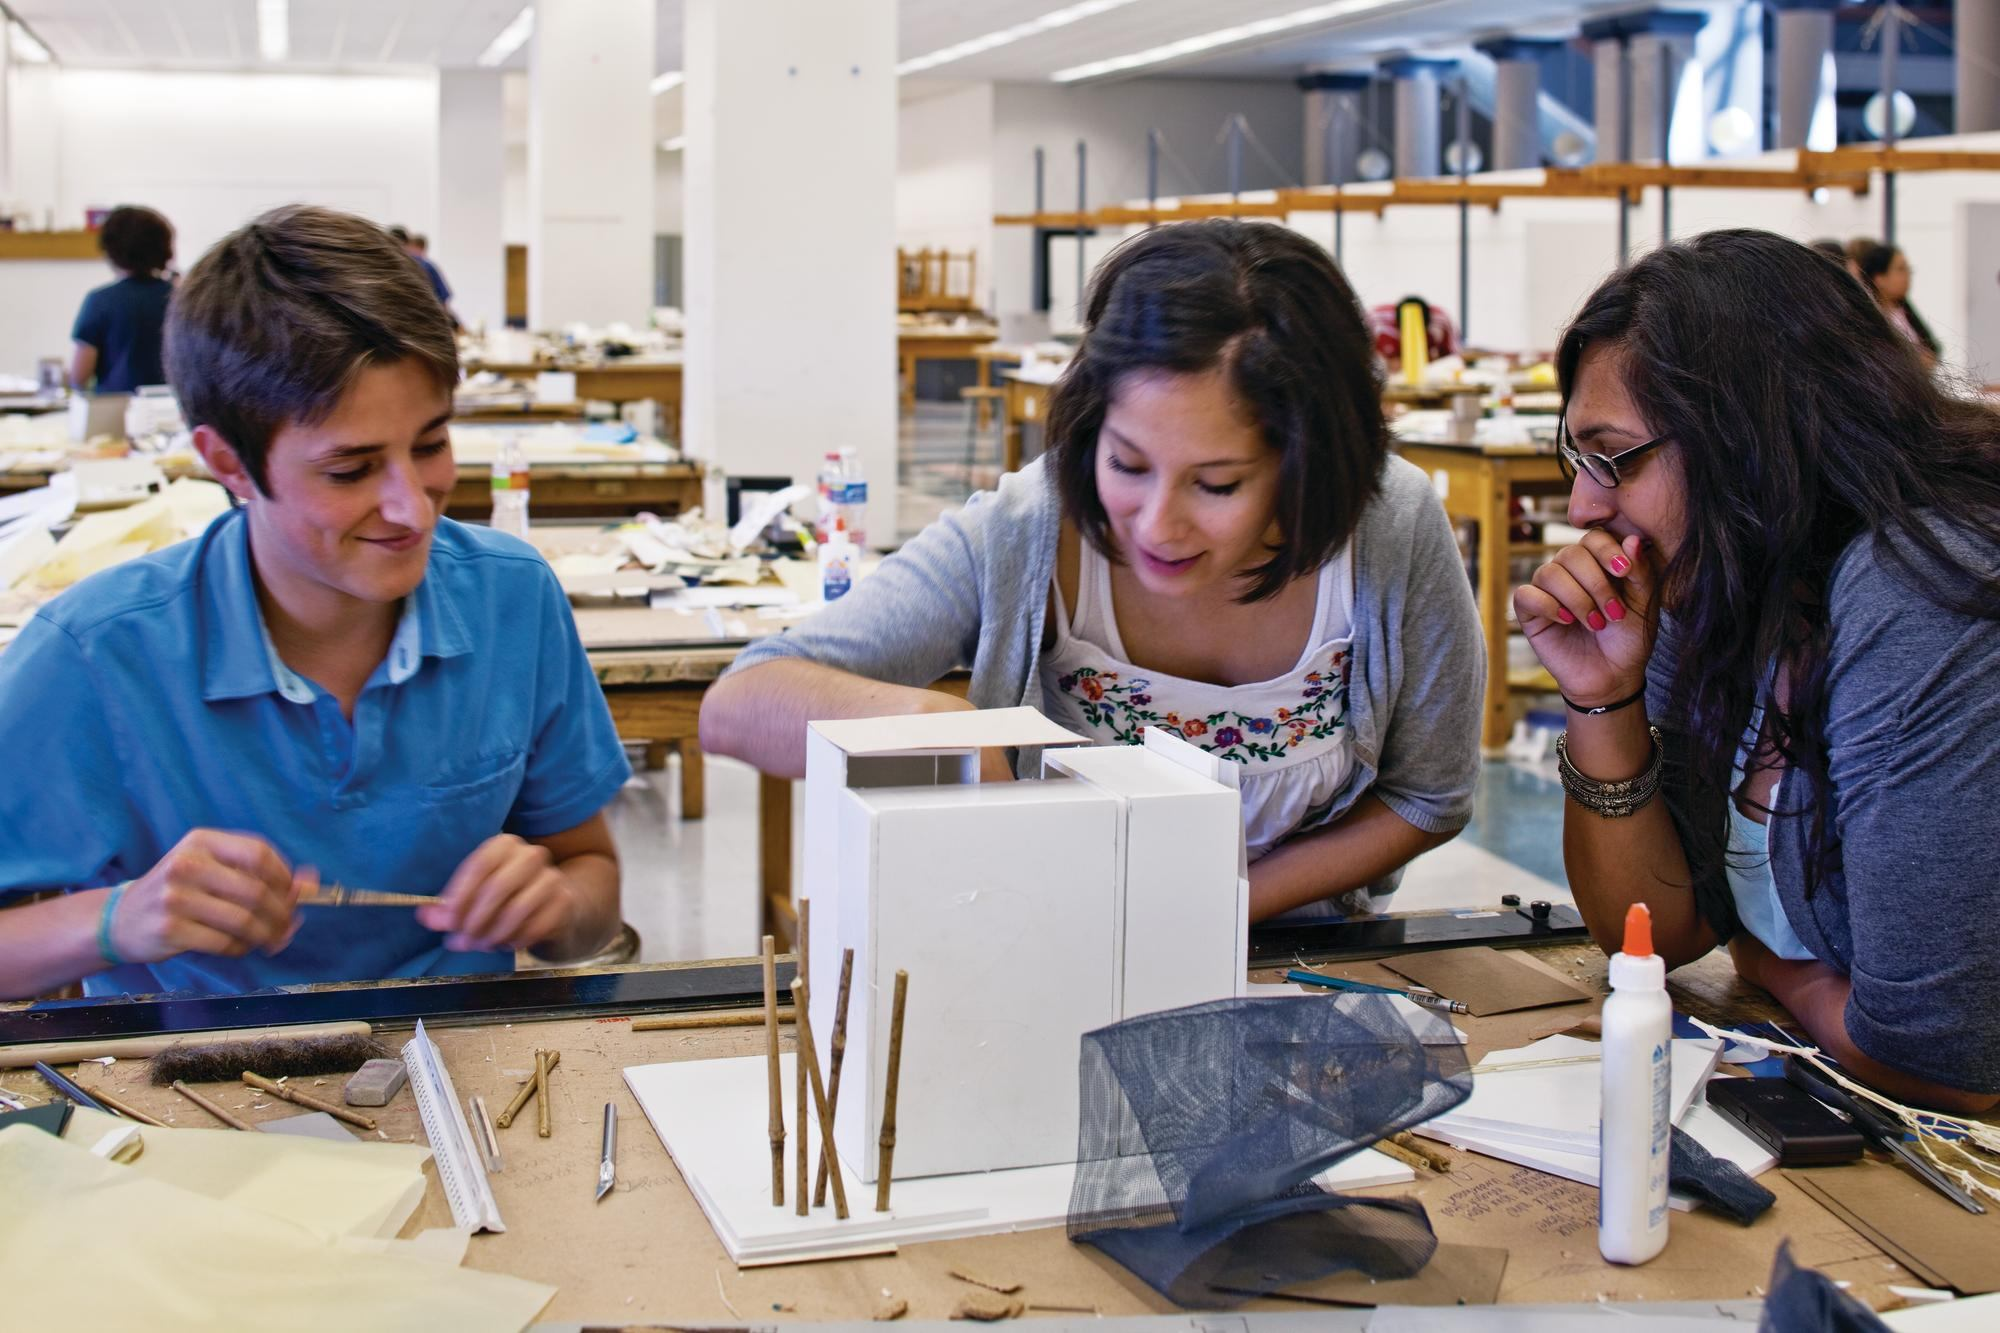 Superieur Design Camp: Summer Discovery, University Of Houston/Wonderworks